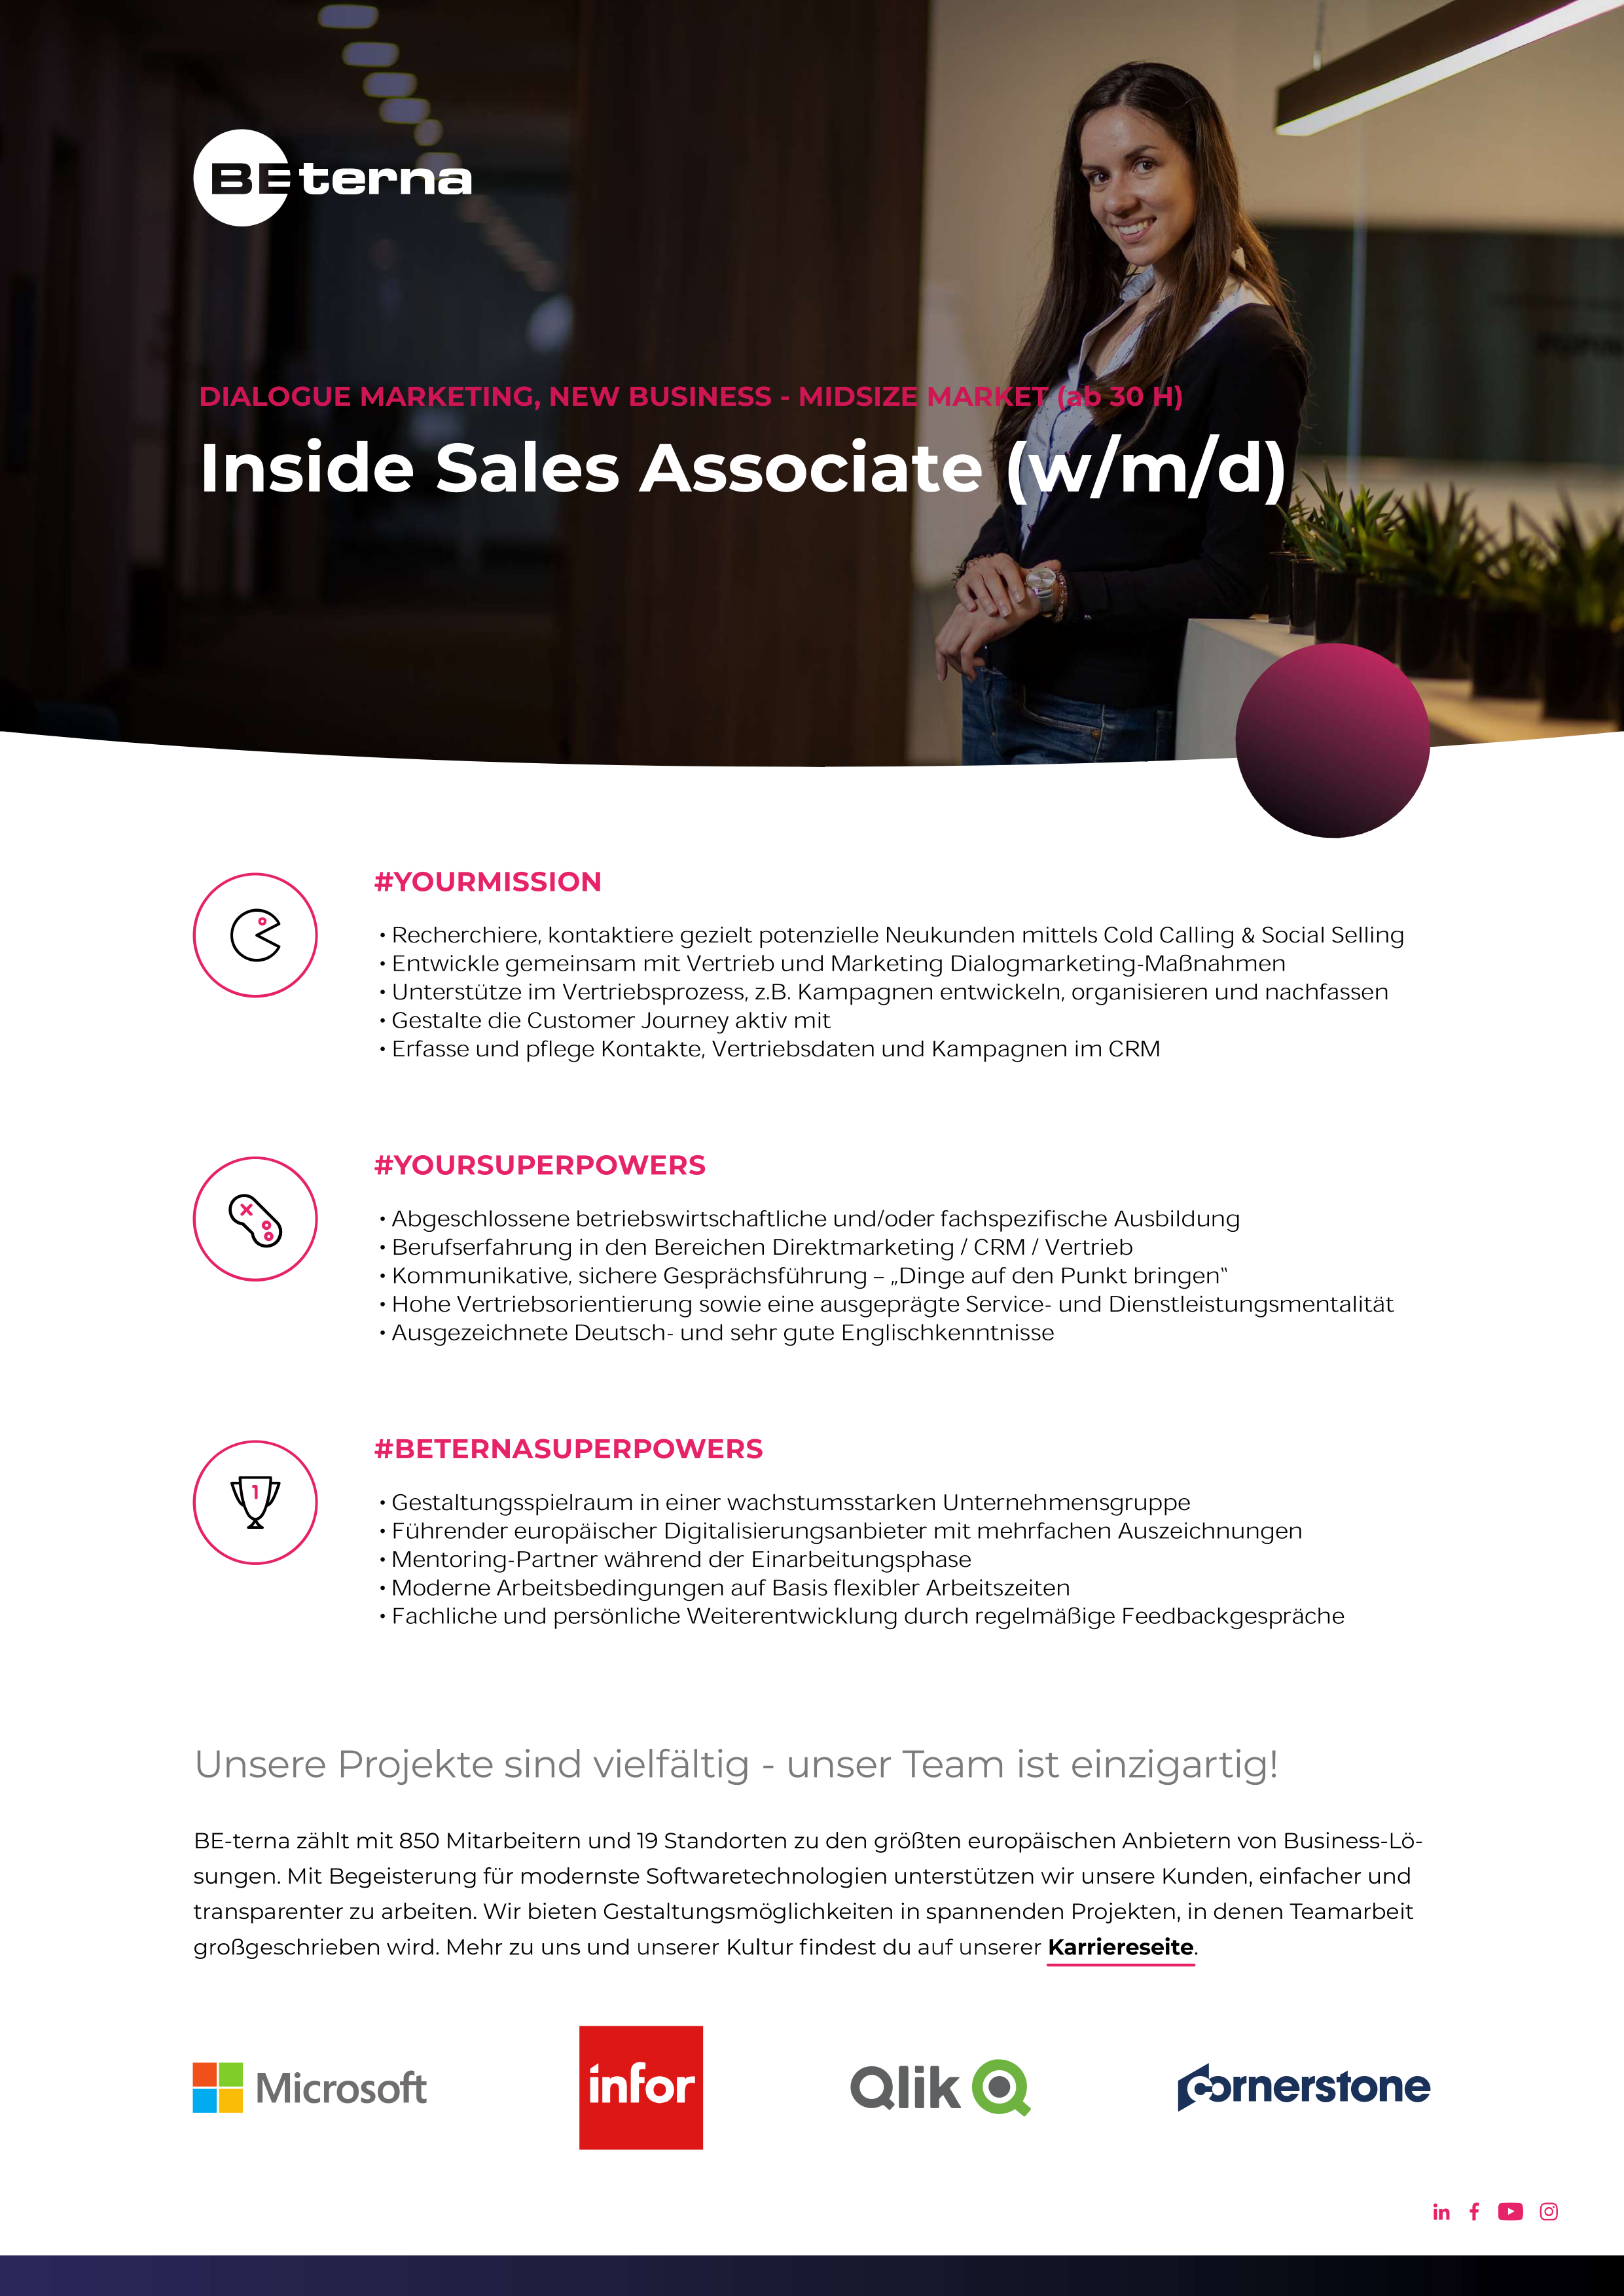 Inside Sales Mitarbeiter (w/m/d) New Business, Midsize Market (ab 30 h)